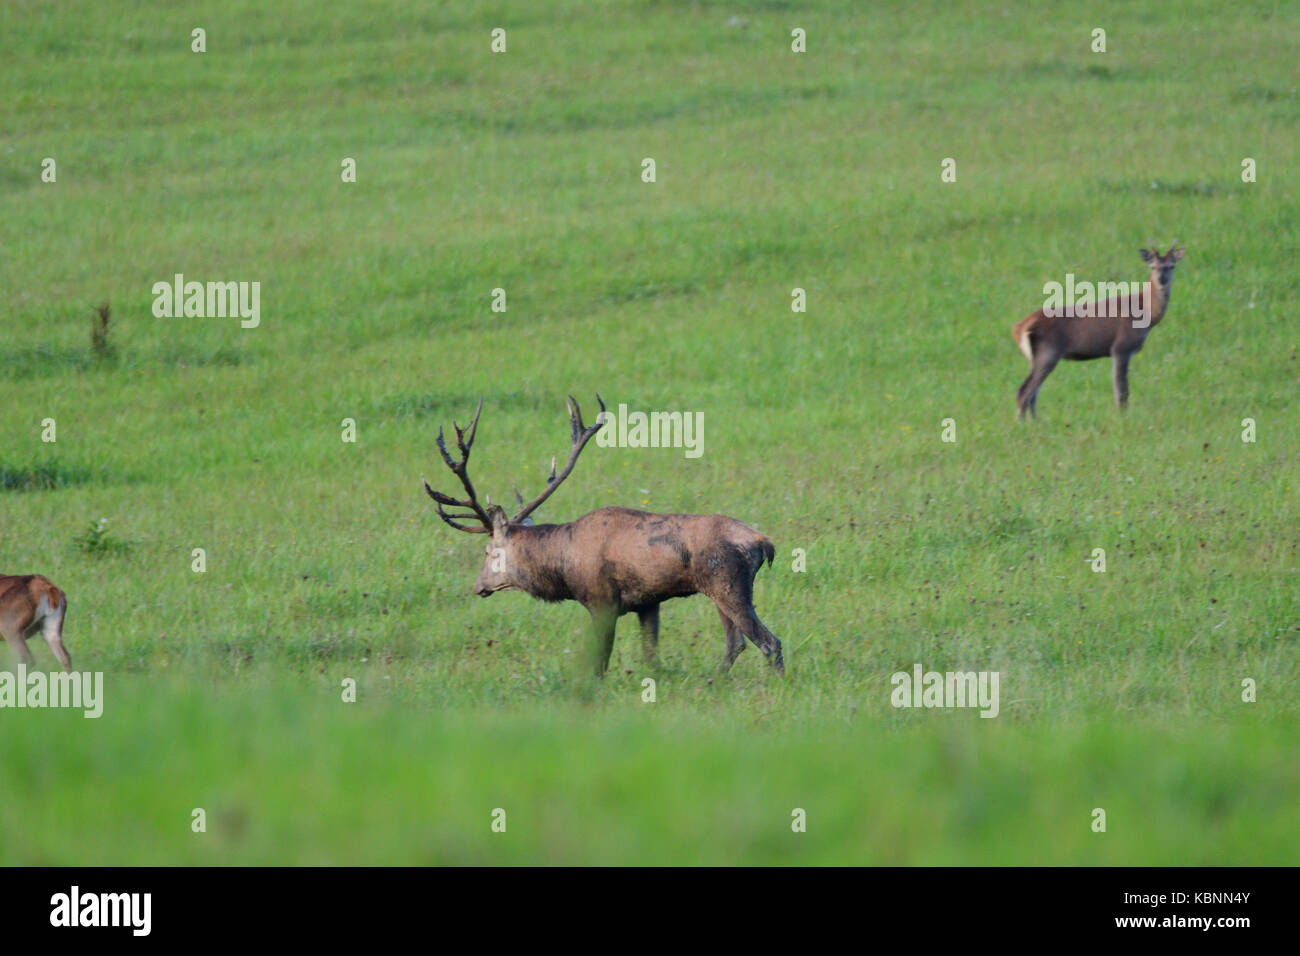 Forest stag in the rut season pairing - Stock Image